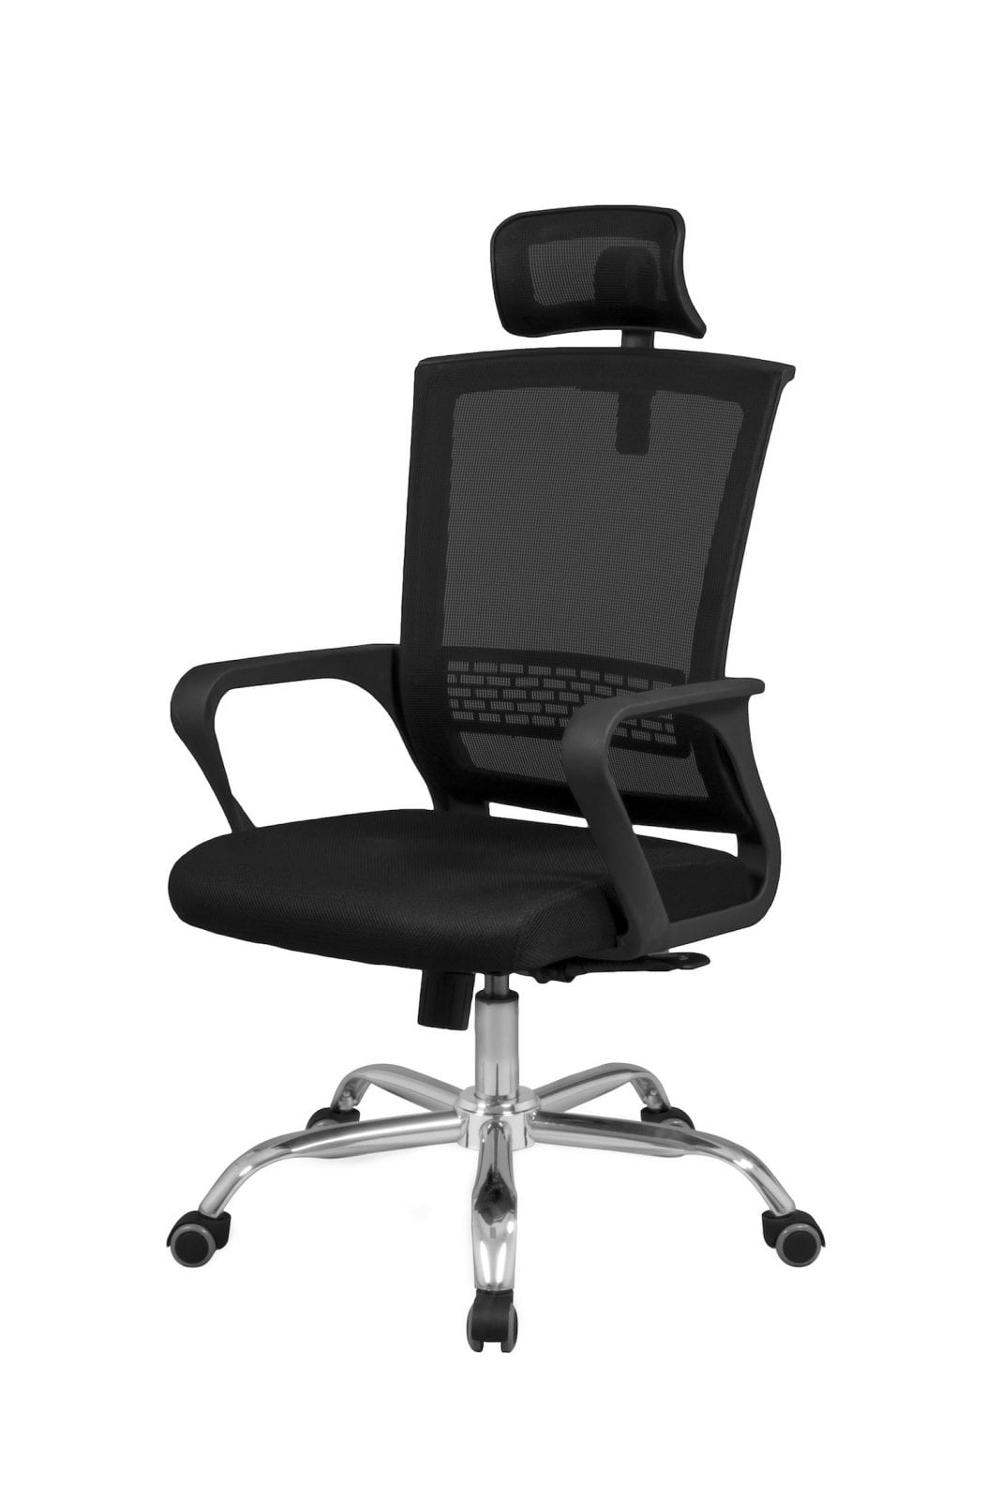 Office Chair MAXX With Metal Frame And PVC, Swivel Chair, Office Chair, Office Chair, Desk Chair, Chairs